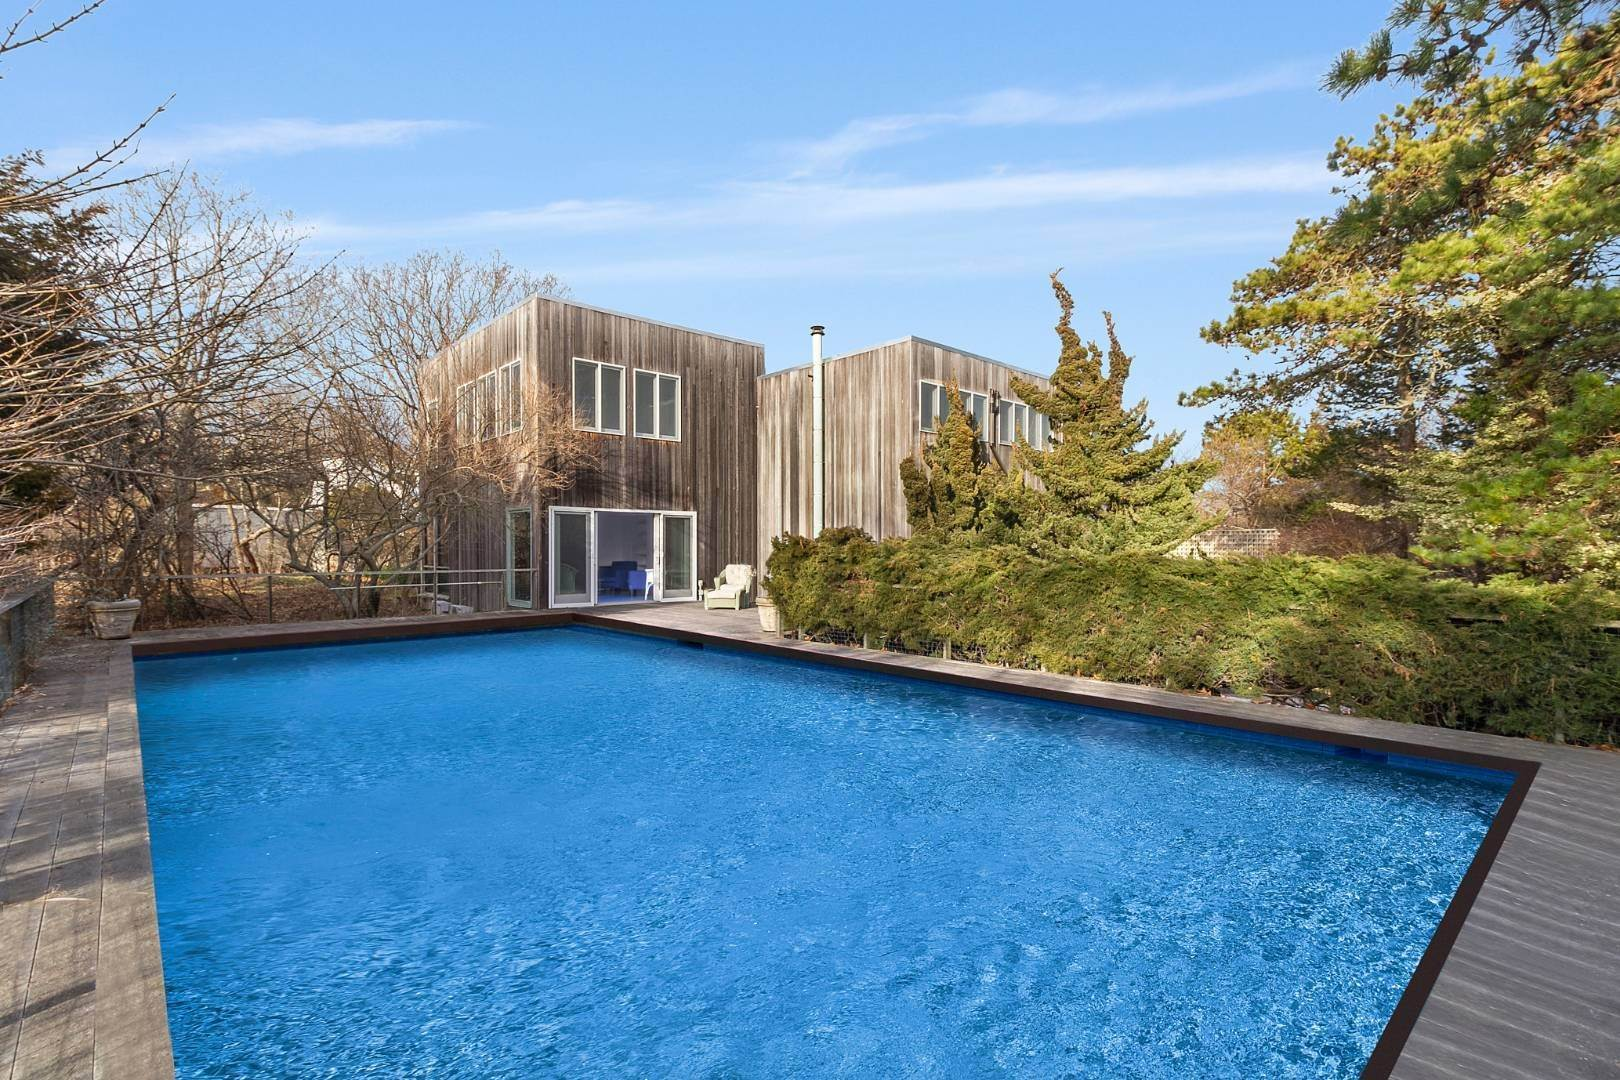 Single Family Home for Sale at Seabreeze By The Atlantic Seashore In Amagansett 4 Seabreeze Lane, Amagansett, NY 11930